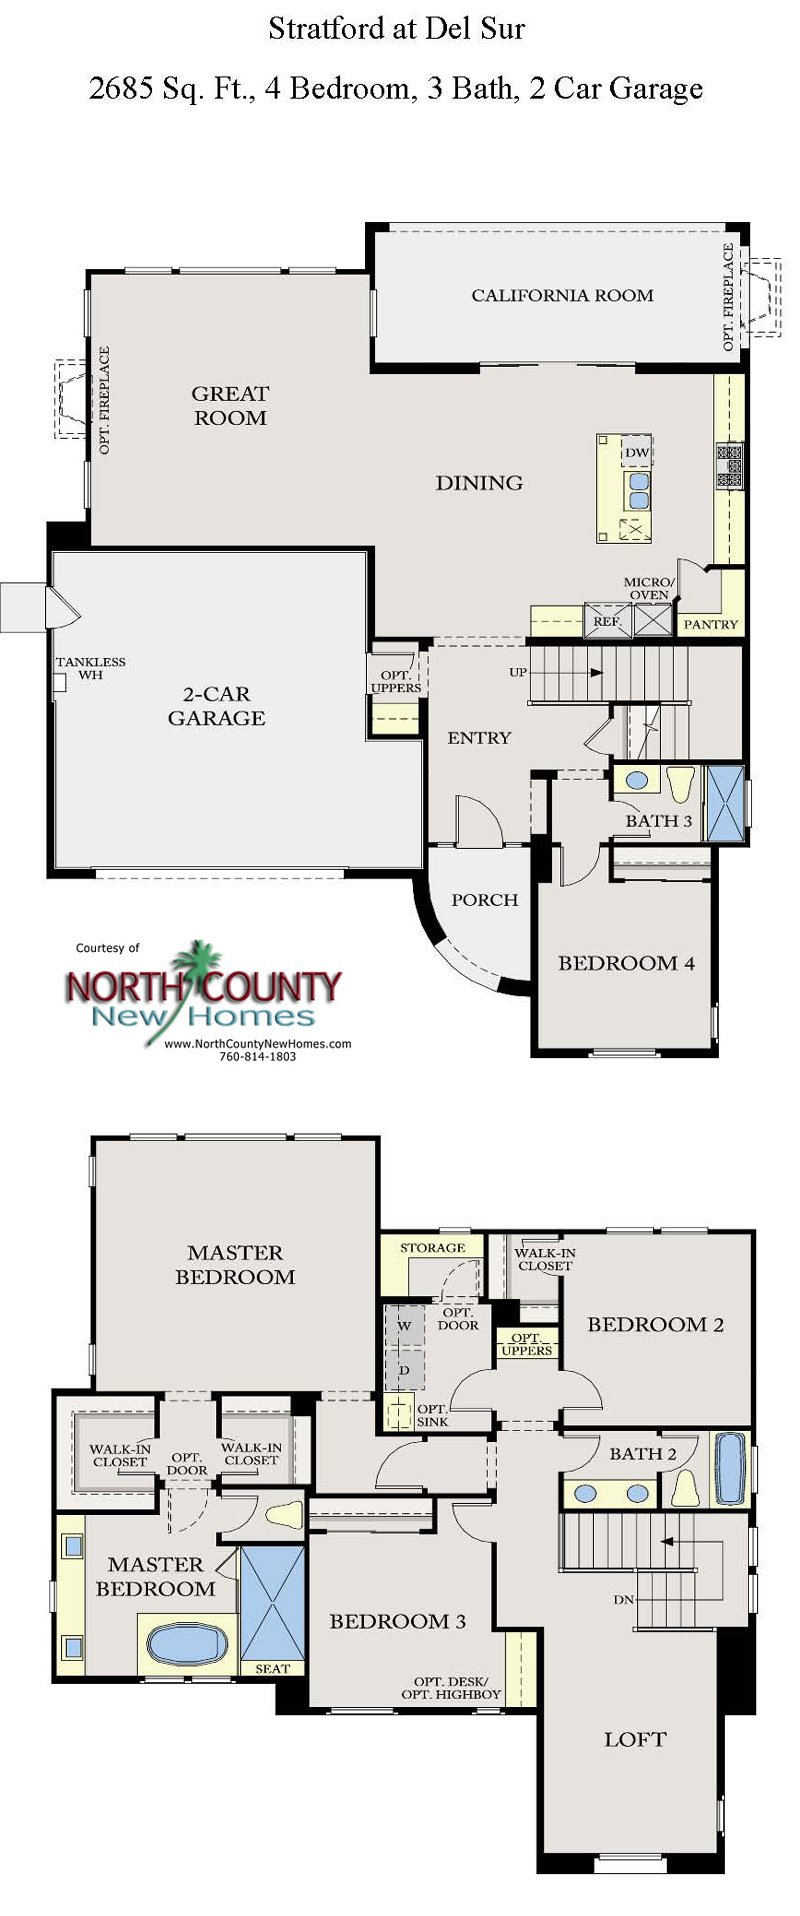 Stratford at del sur floor plans new homes in san diego for New house floor plans